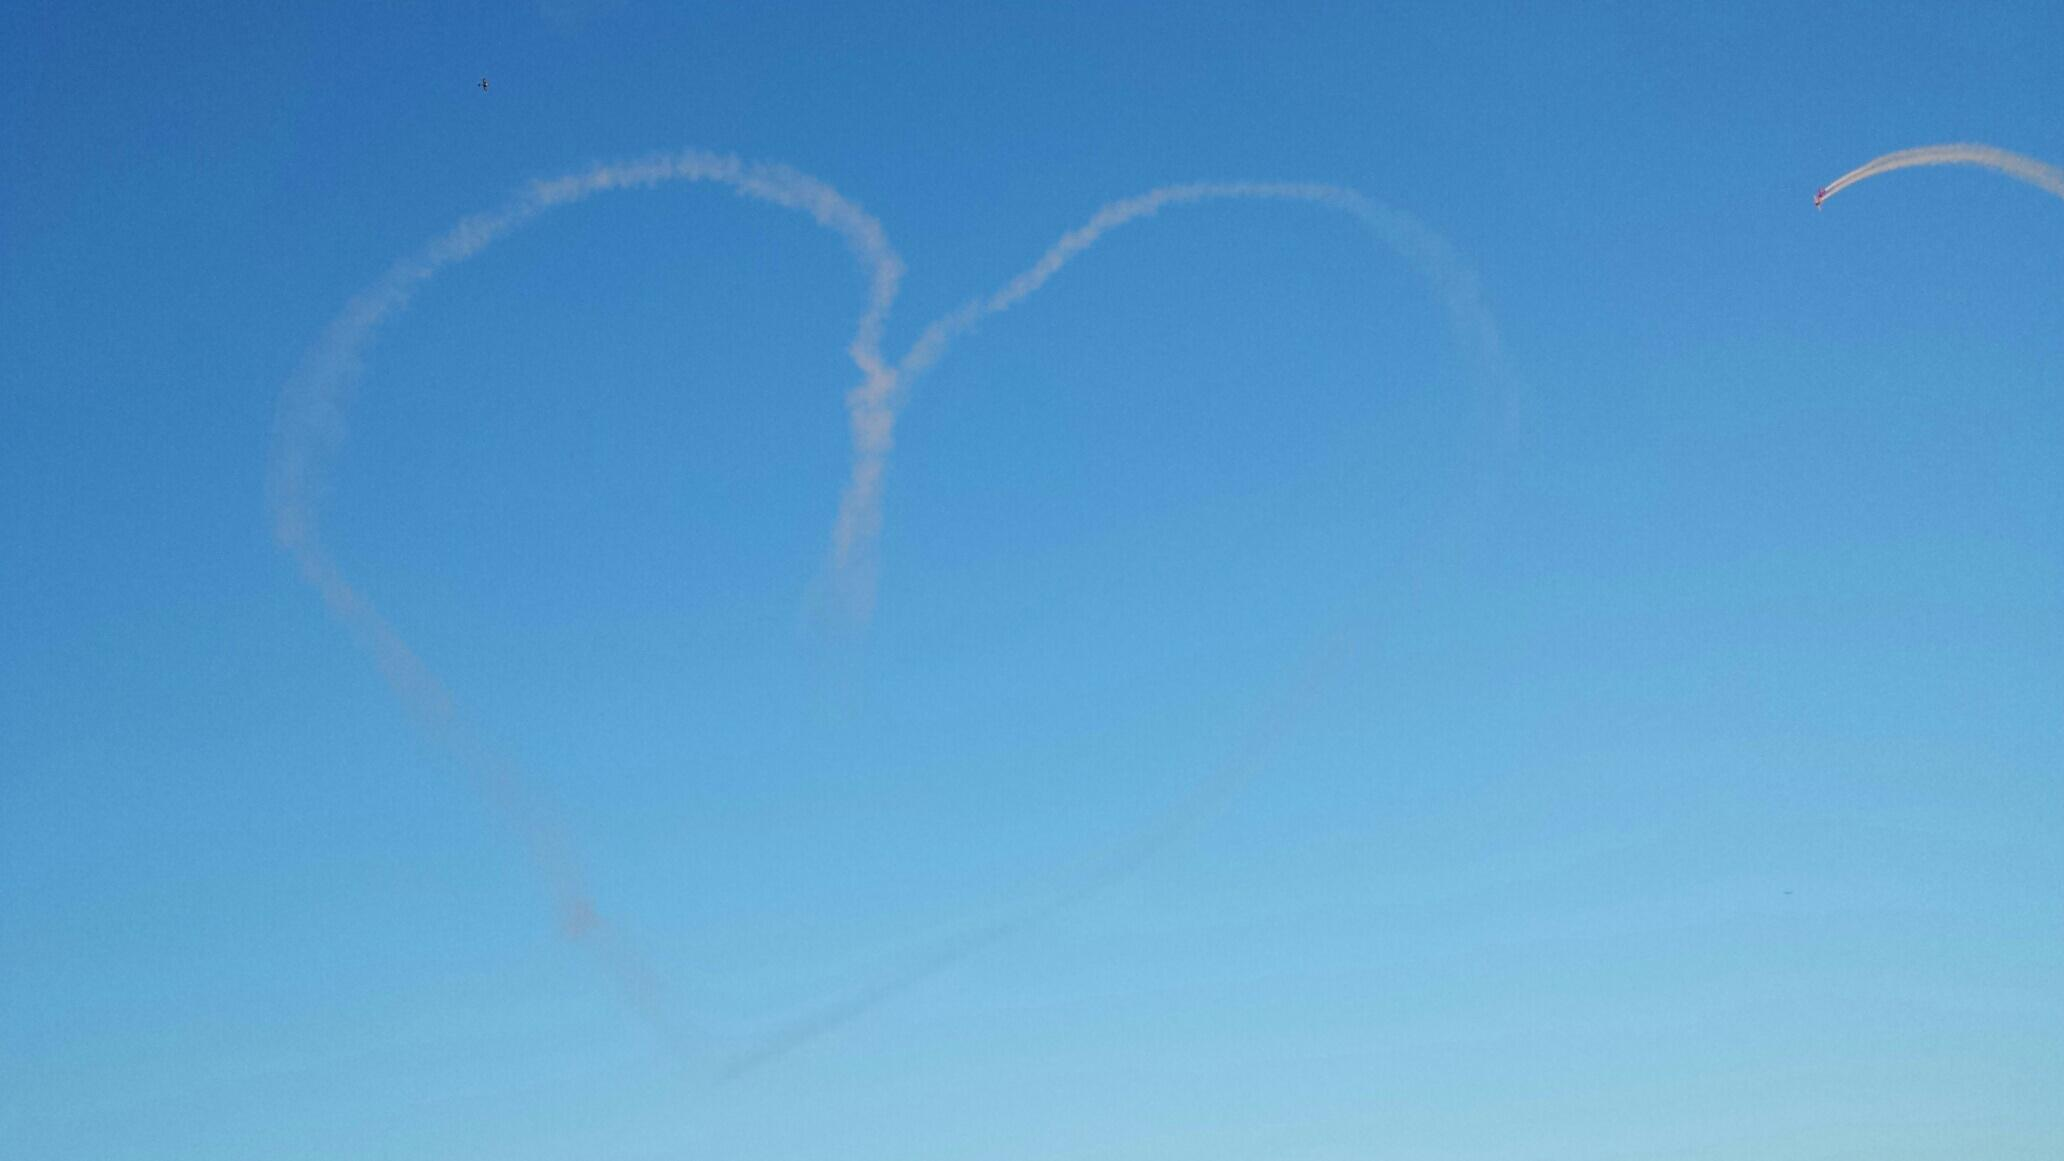 Heart in the sky (taken by him)